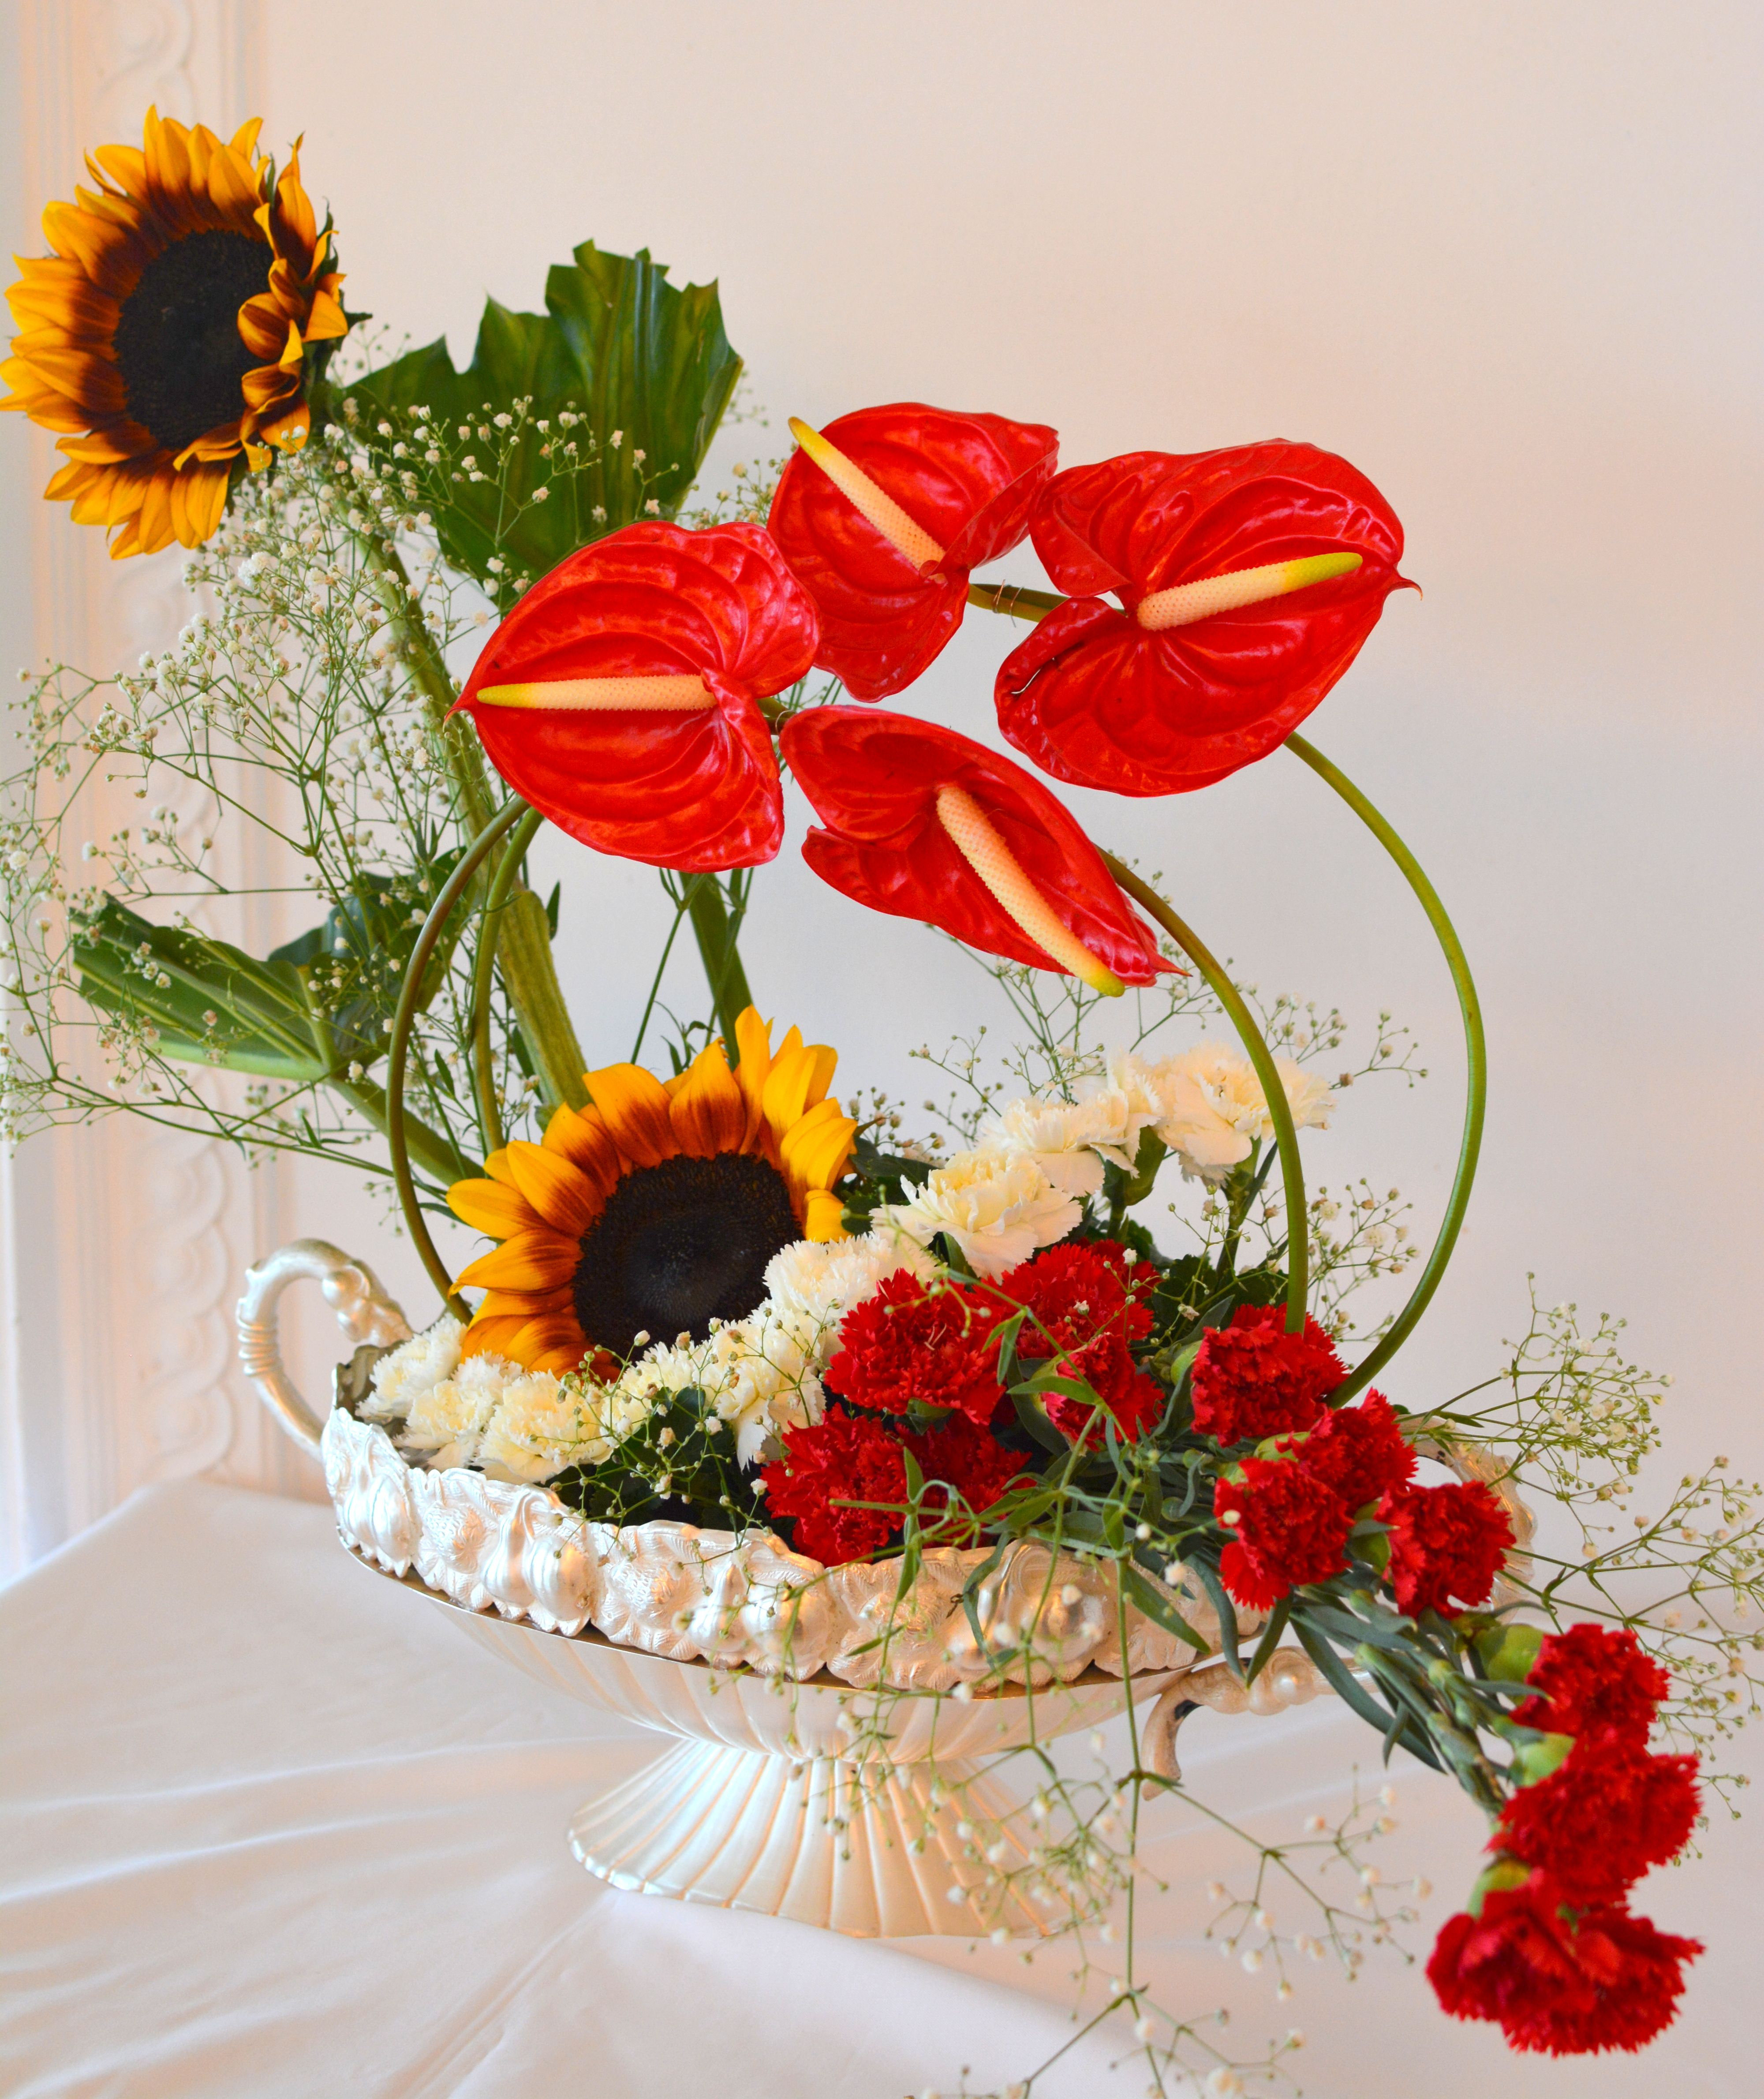 A bright arrangement of #SunFlowers #Anthuriums and #Carnations.  #FreshFlowers